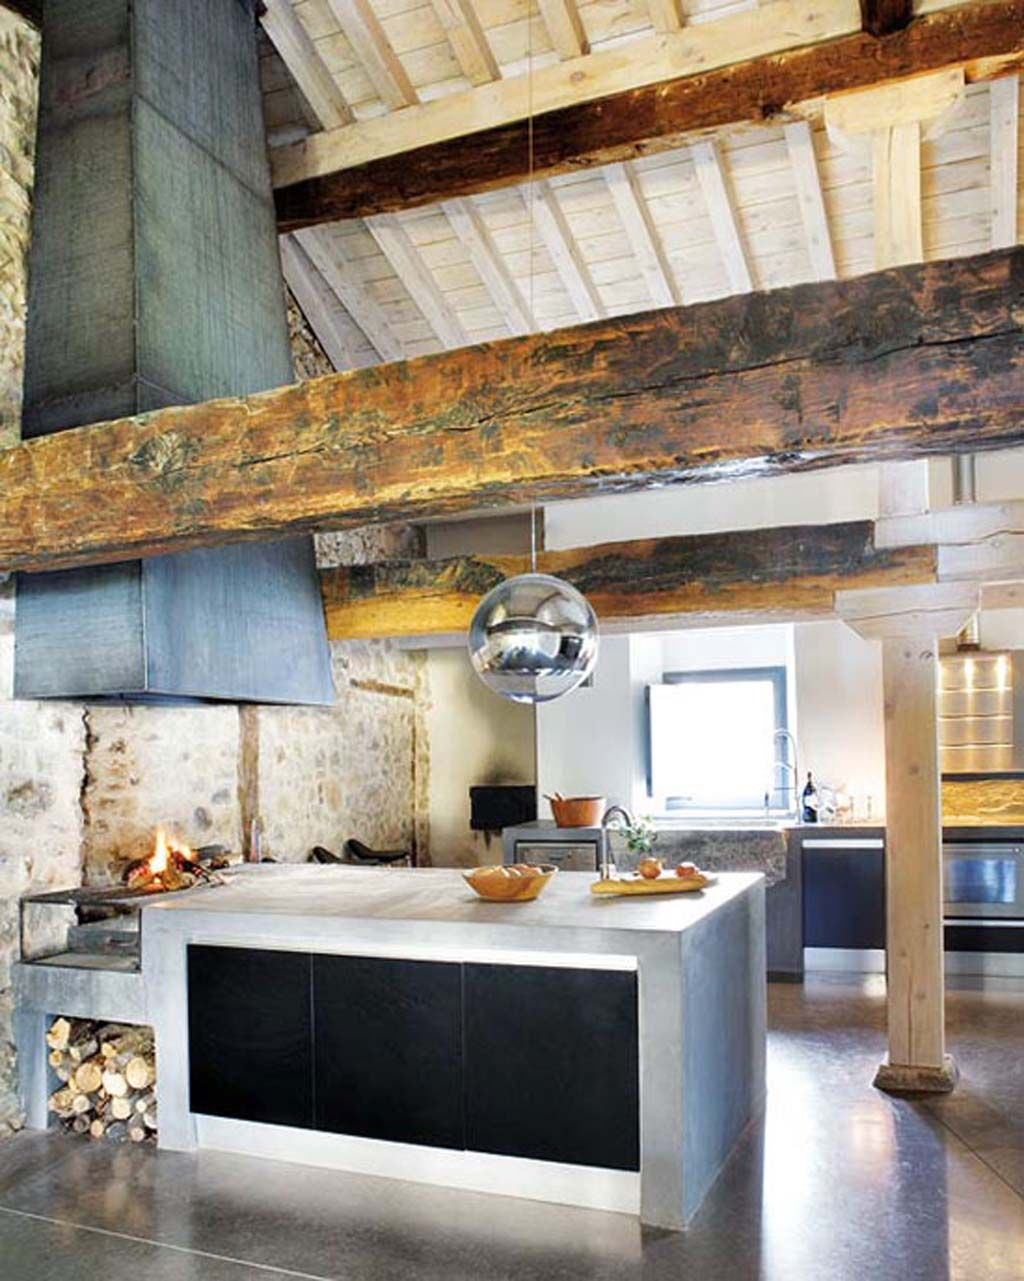 Modern Kitchen In Old House Cozinha Rustica Moderna Casa E Decoraassalbo Pinterest Modern